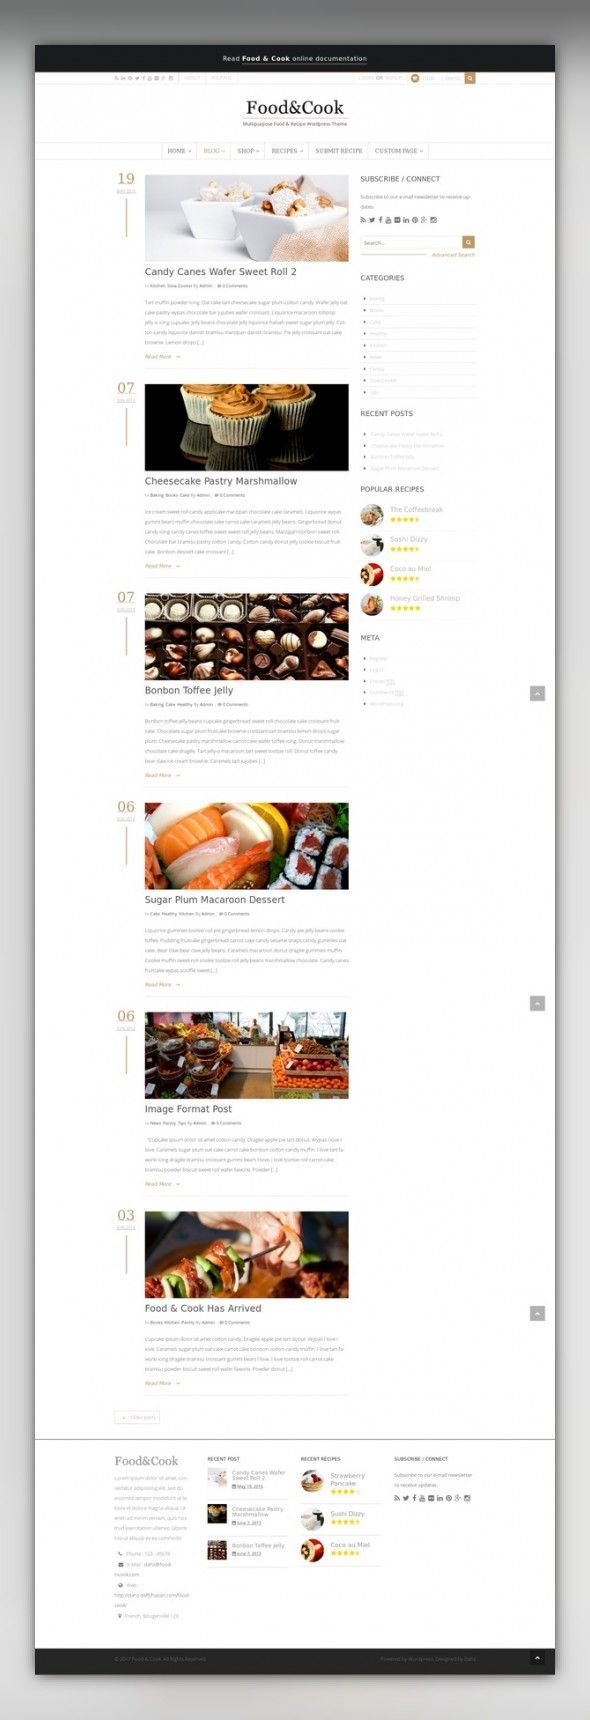 Food & Cook - Multipurpose Food Recipe WP Theme clean, cooking, food, minimalist, mobile, modern, multipurpose, parallax, recipe, responsive, restaurant, review, sharing, shop, wordpress Food & Cook is your Food Blog Wordpress Theme, sharing recipes and cooking tips can't get any easier than this. With Beautiful and Clean design its a Perfect display for your food catalogue. Choose your favorite layout ! 6 home layouts and 3 recipe layou...